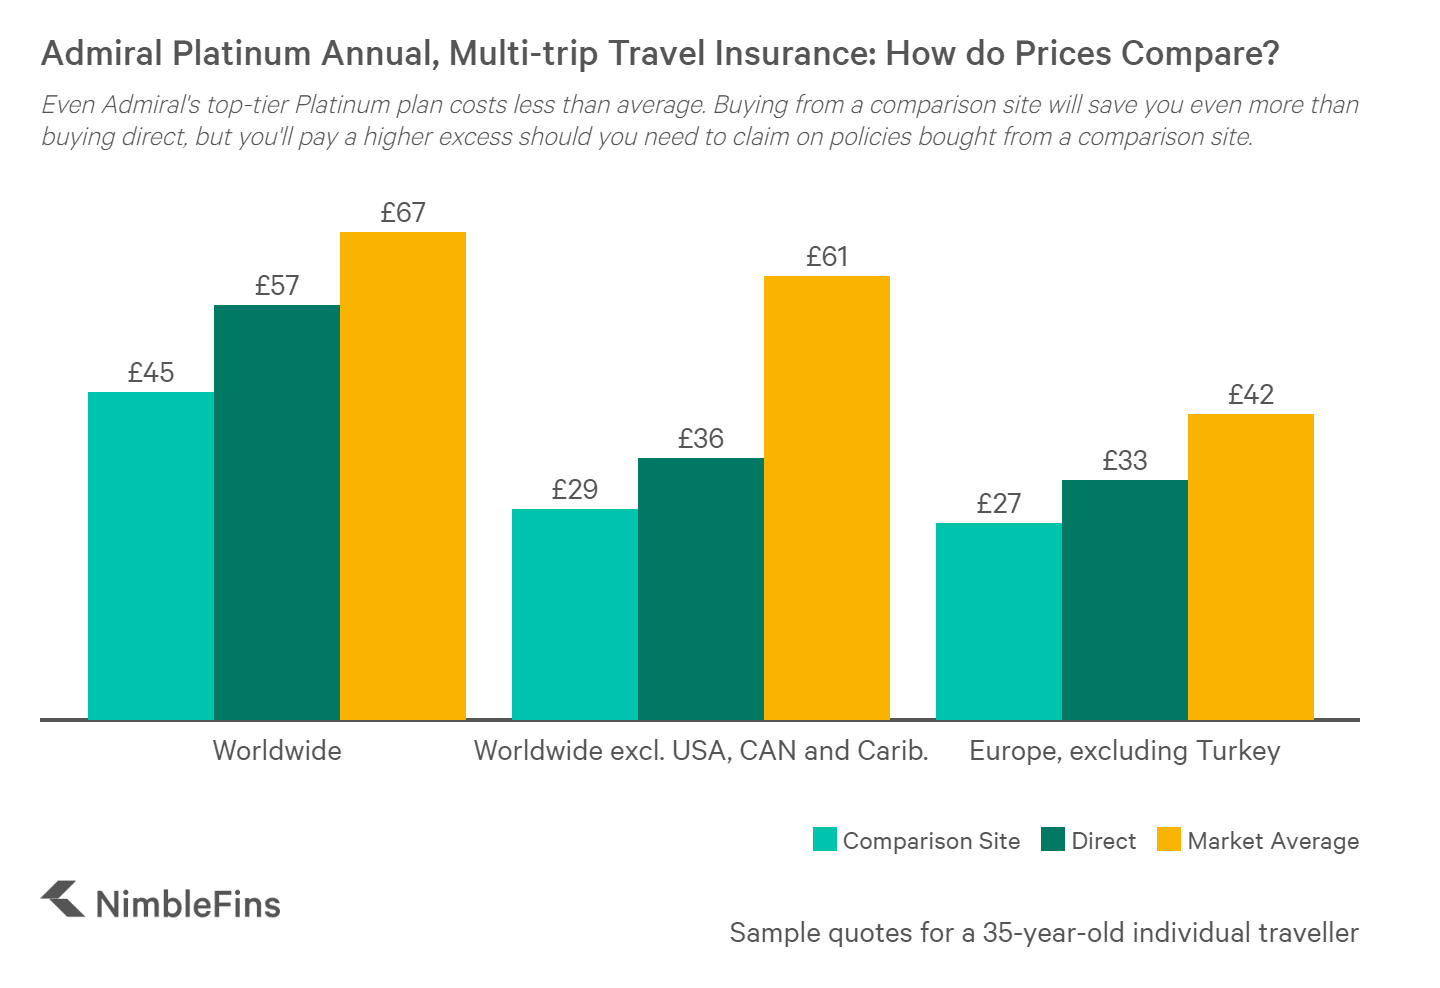 hight resolution of chart showing admiral single trip travel insurance prices compared to market averages